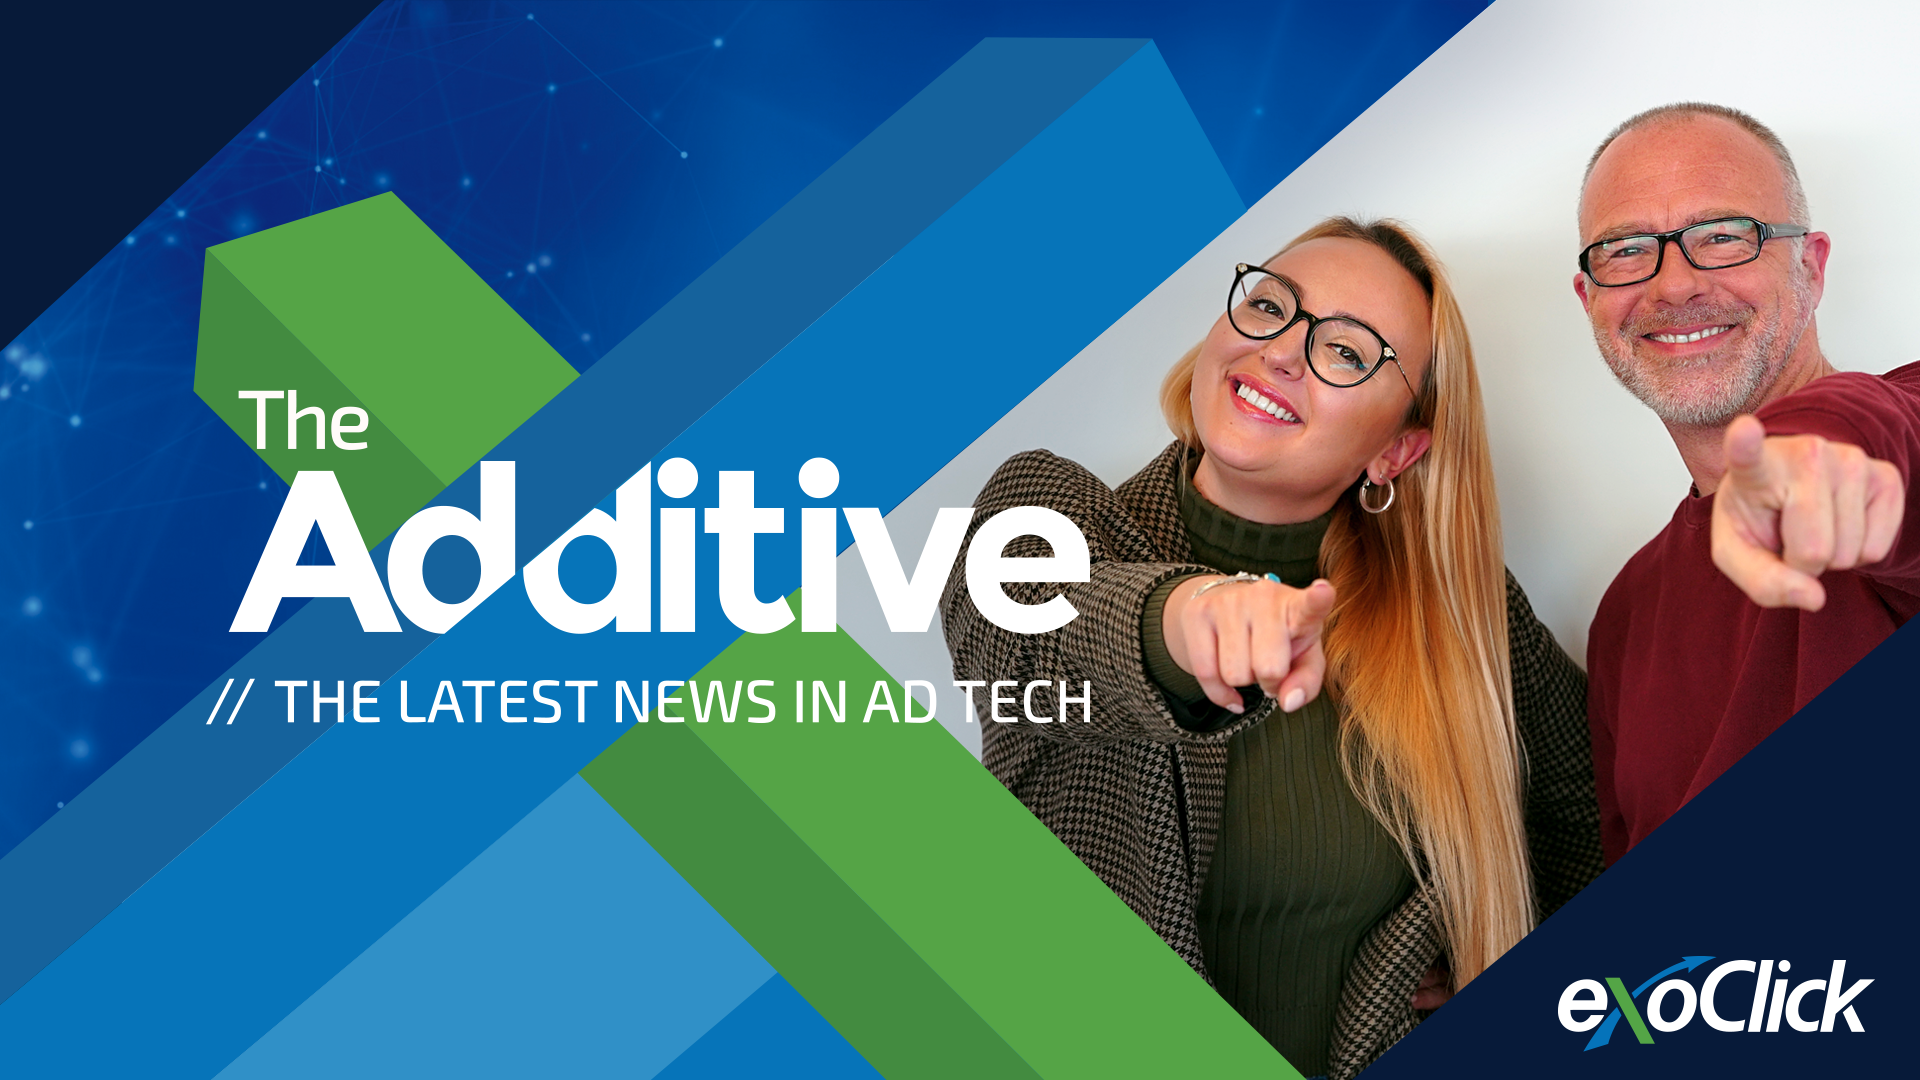 The Additive December 2019